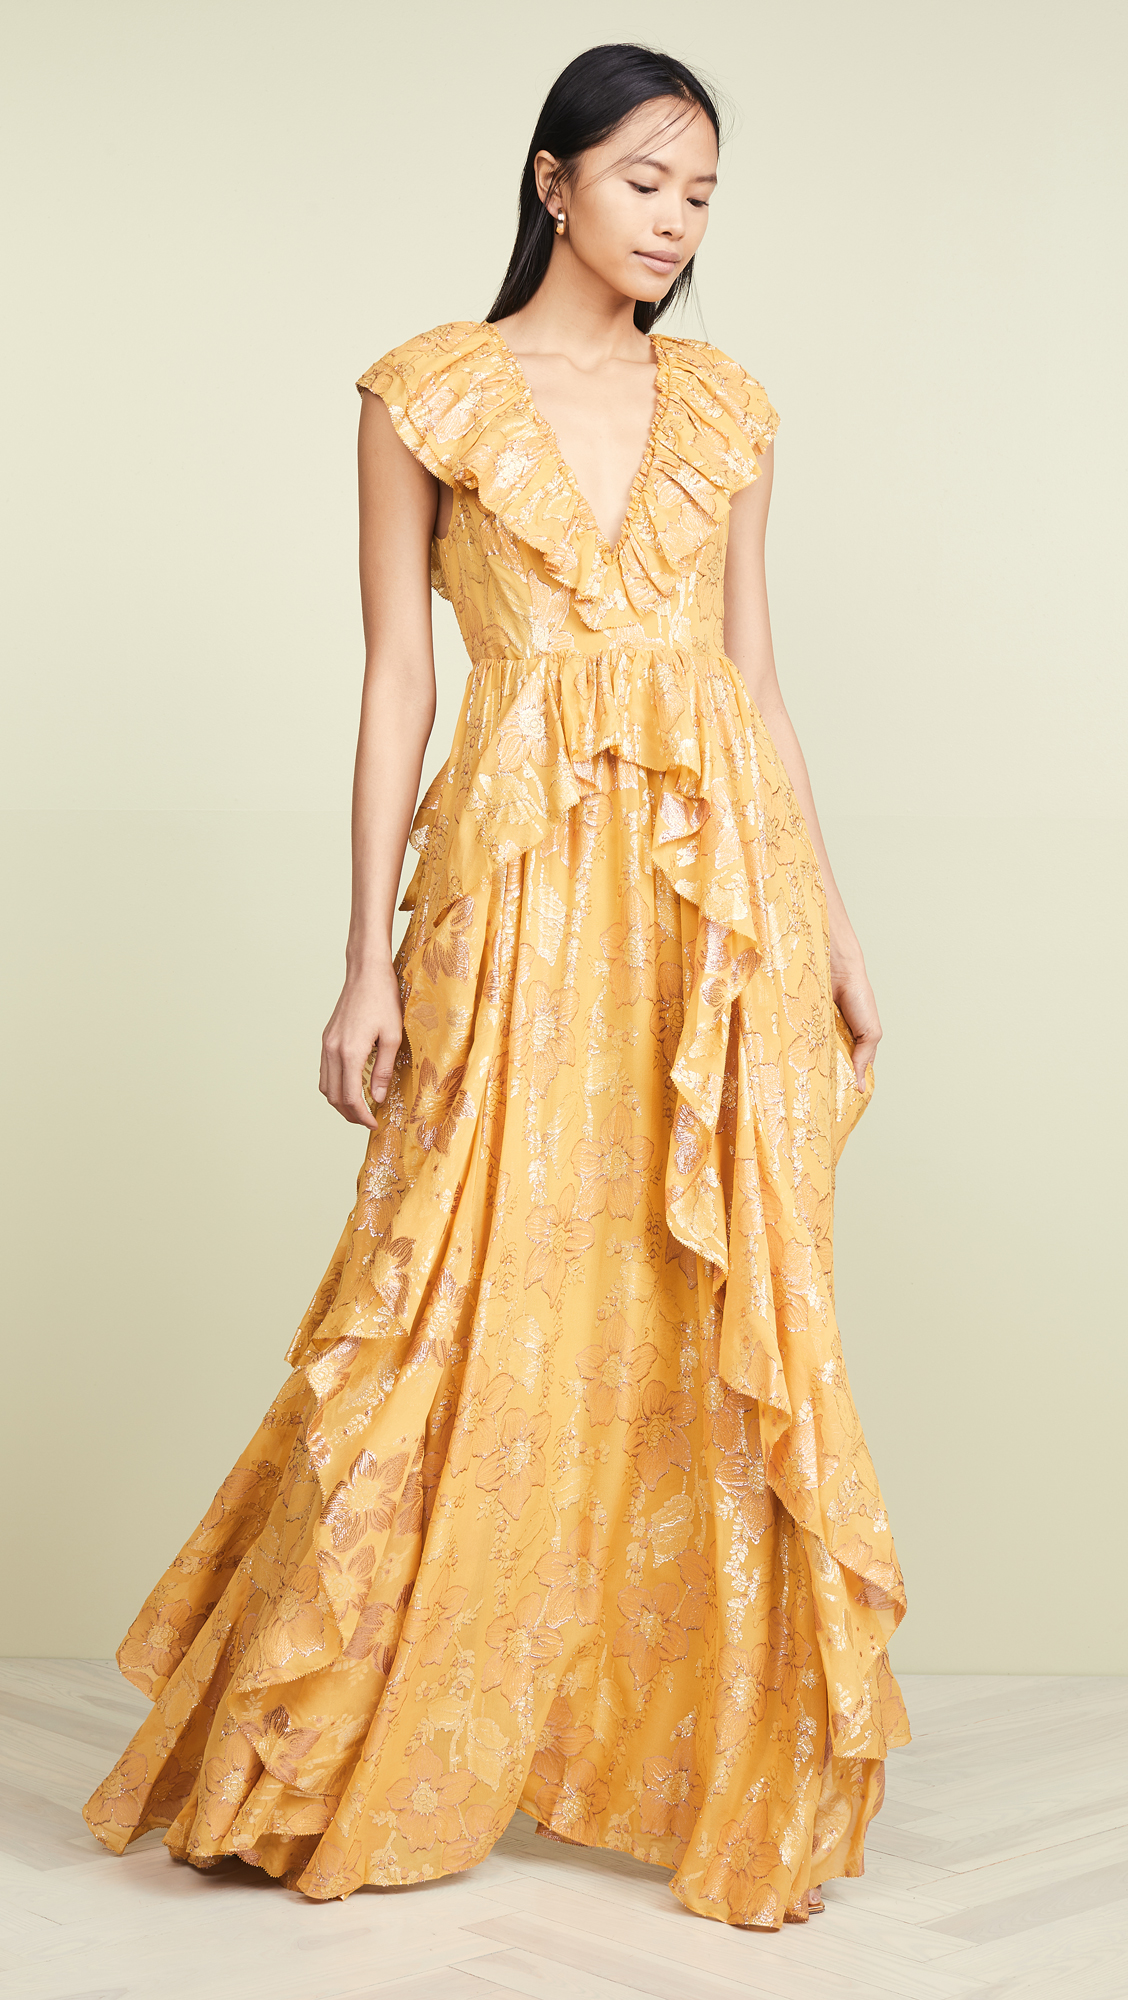 Metallic Flower Crepe Yellow Gown Ulla Johnson Maxi Dress